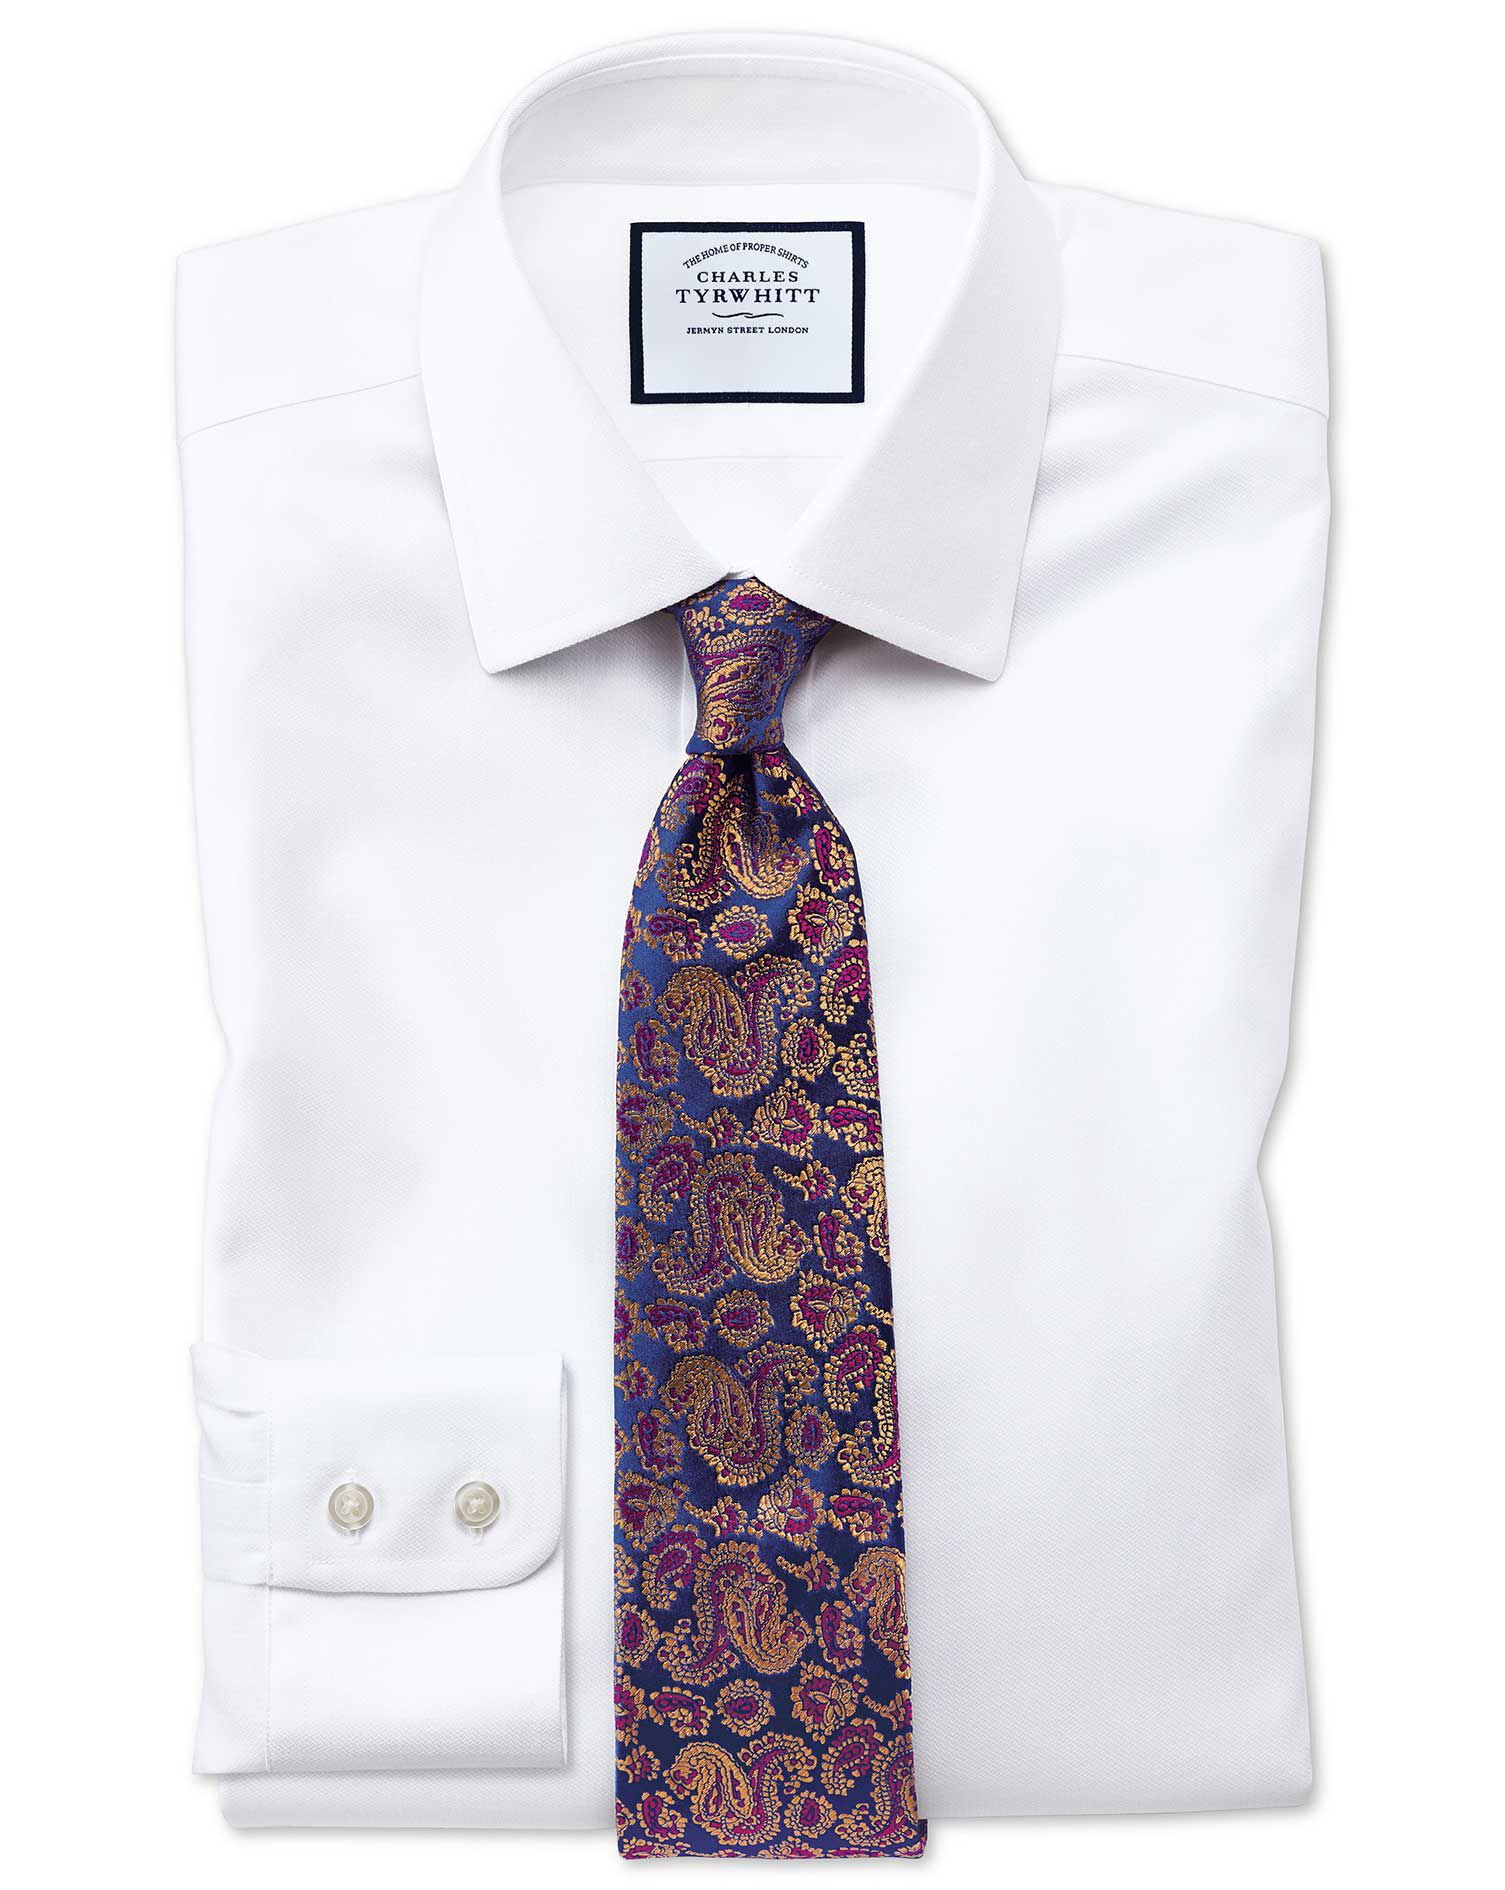 Slim Fit Non-Iron Step Weave White Cotton Formal Shirt Single Cuff Size 17.5/34 by Charles Tyrwhitt